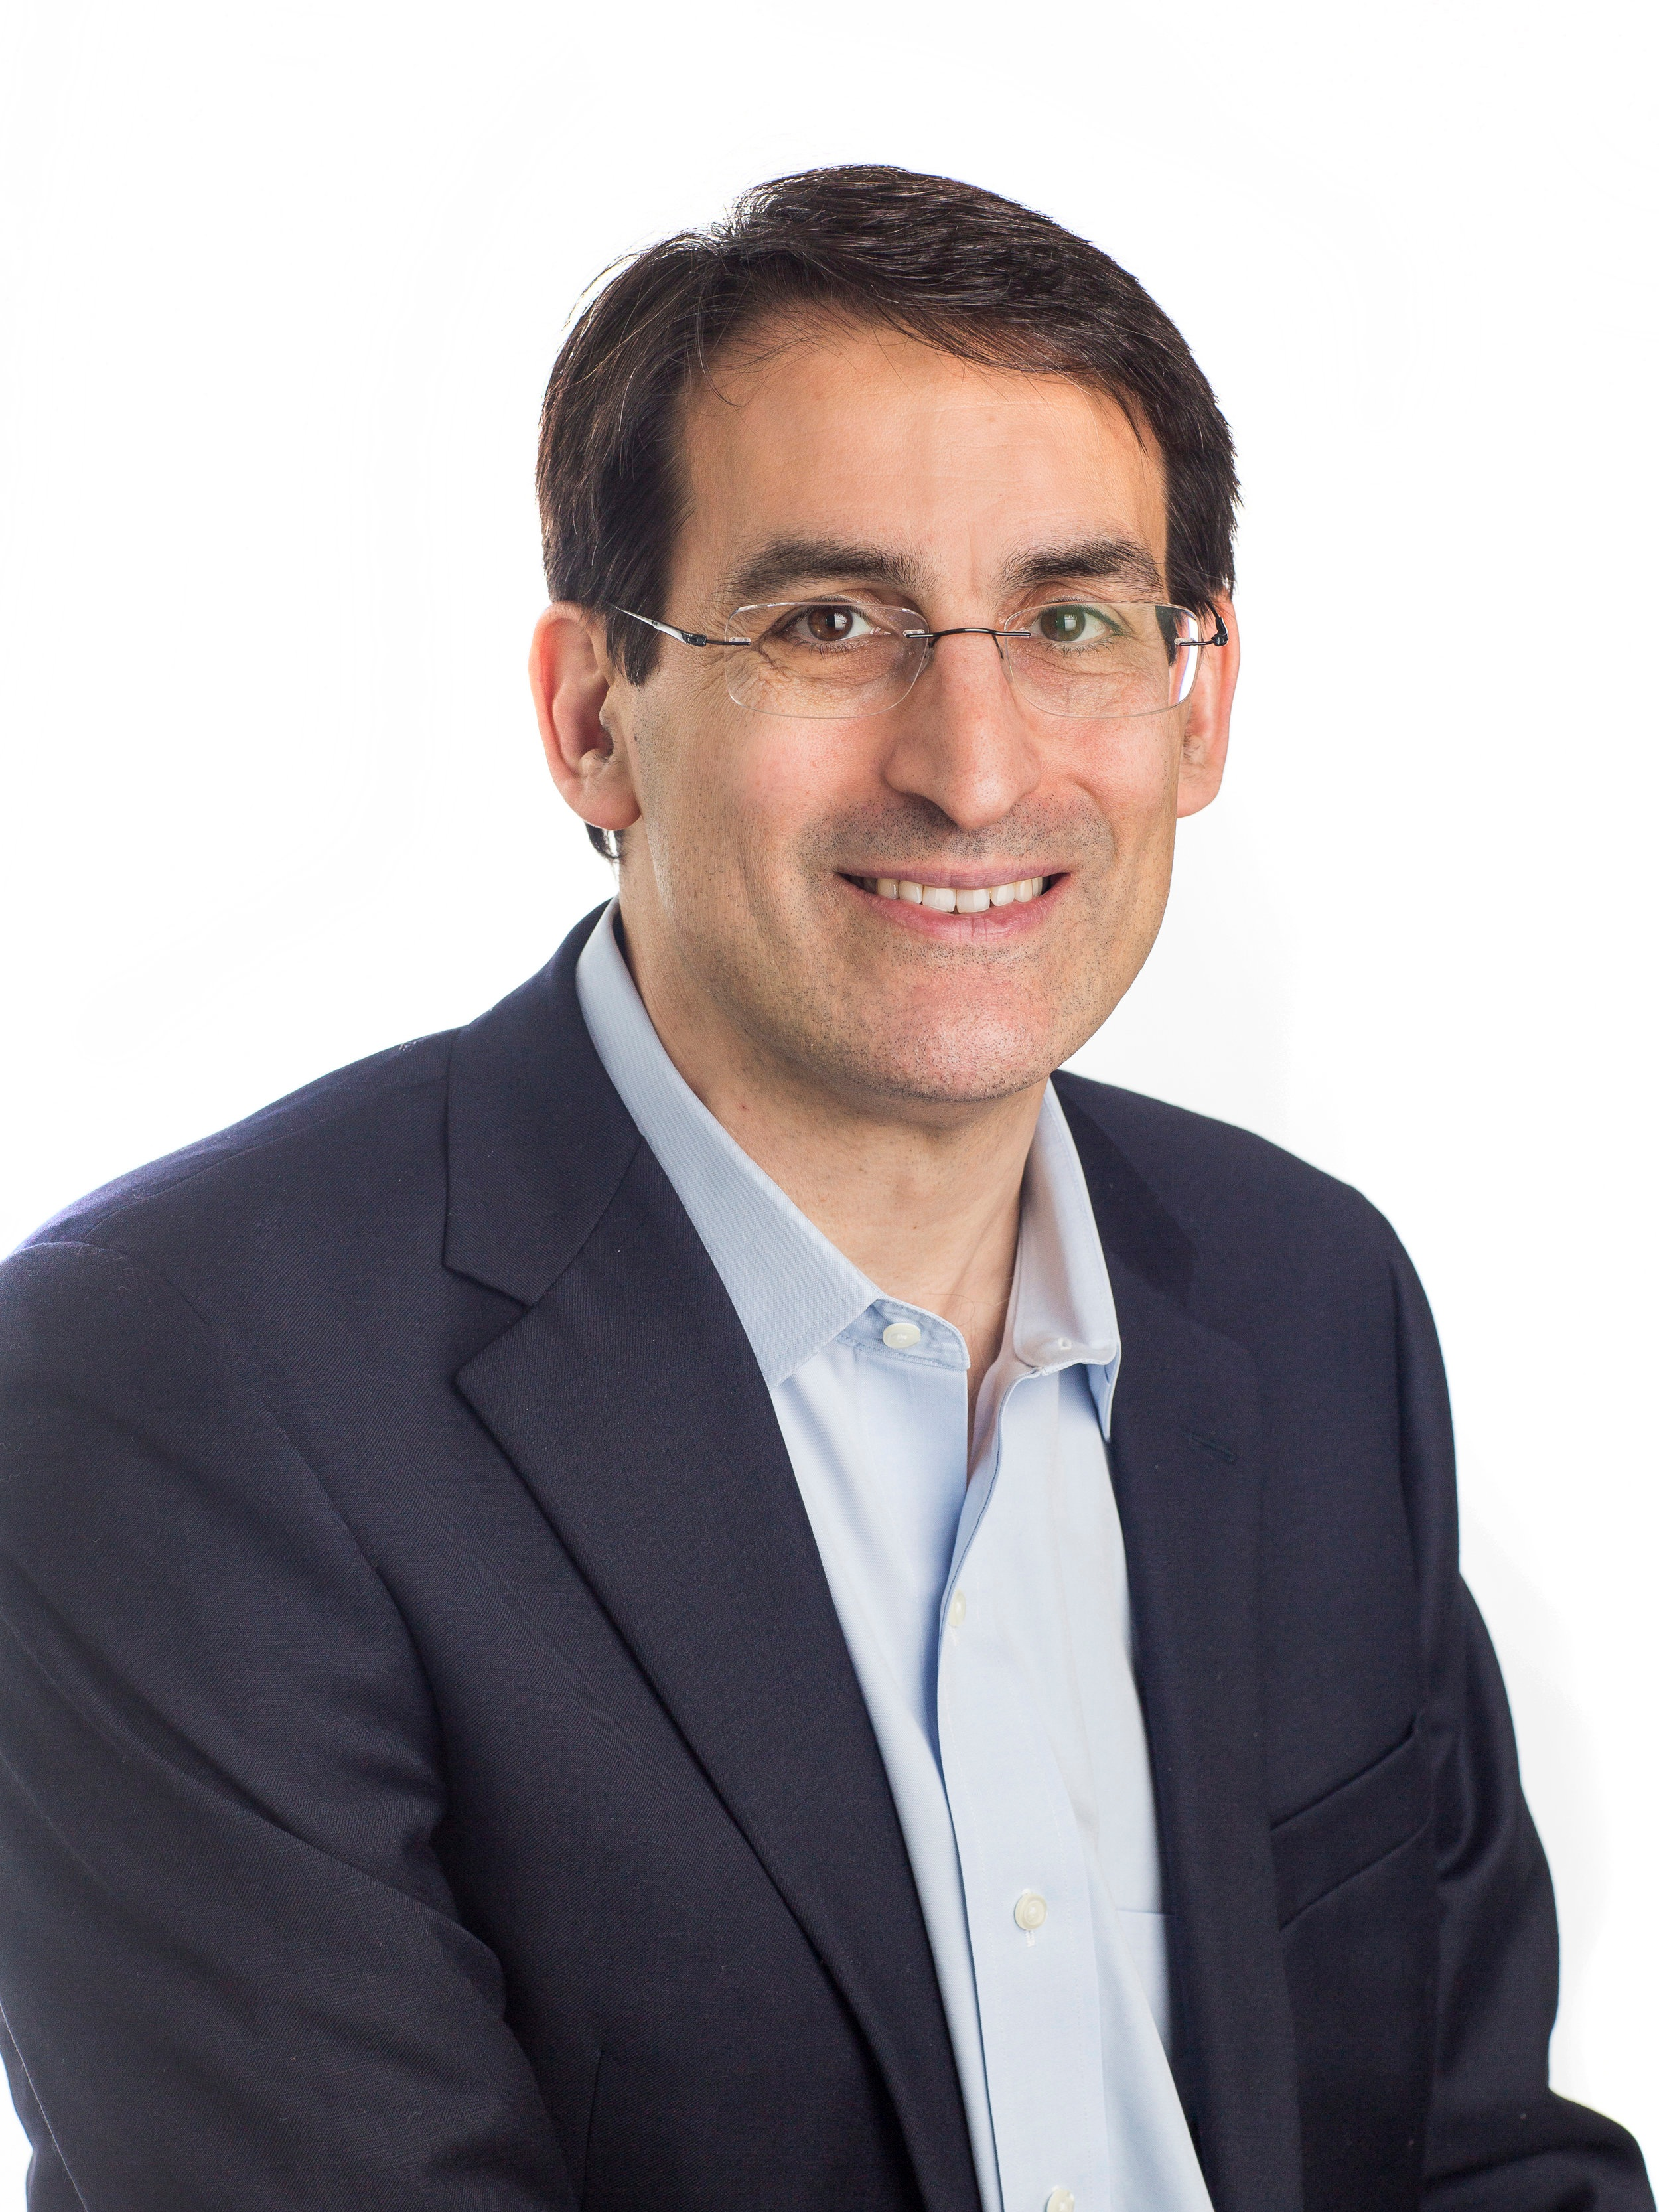 Agustin Melian, MD - Chief Medical Officer & Head of Global Medical Sciences